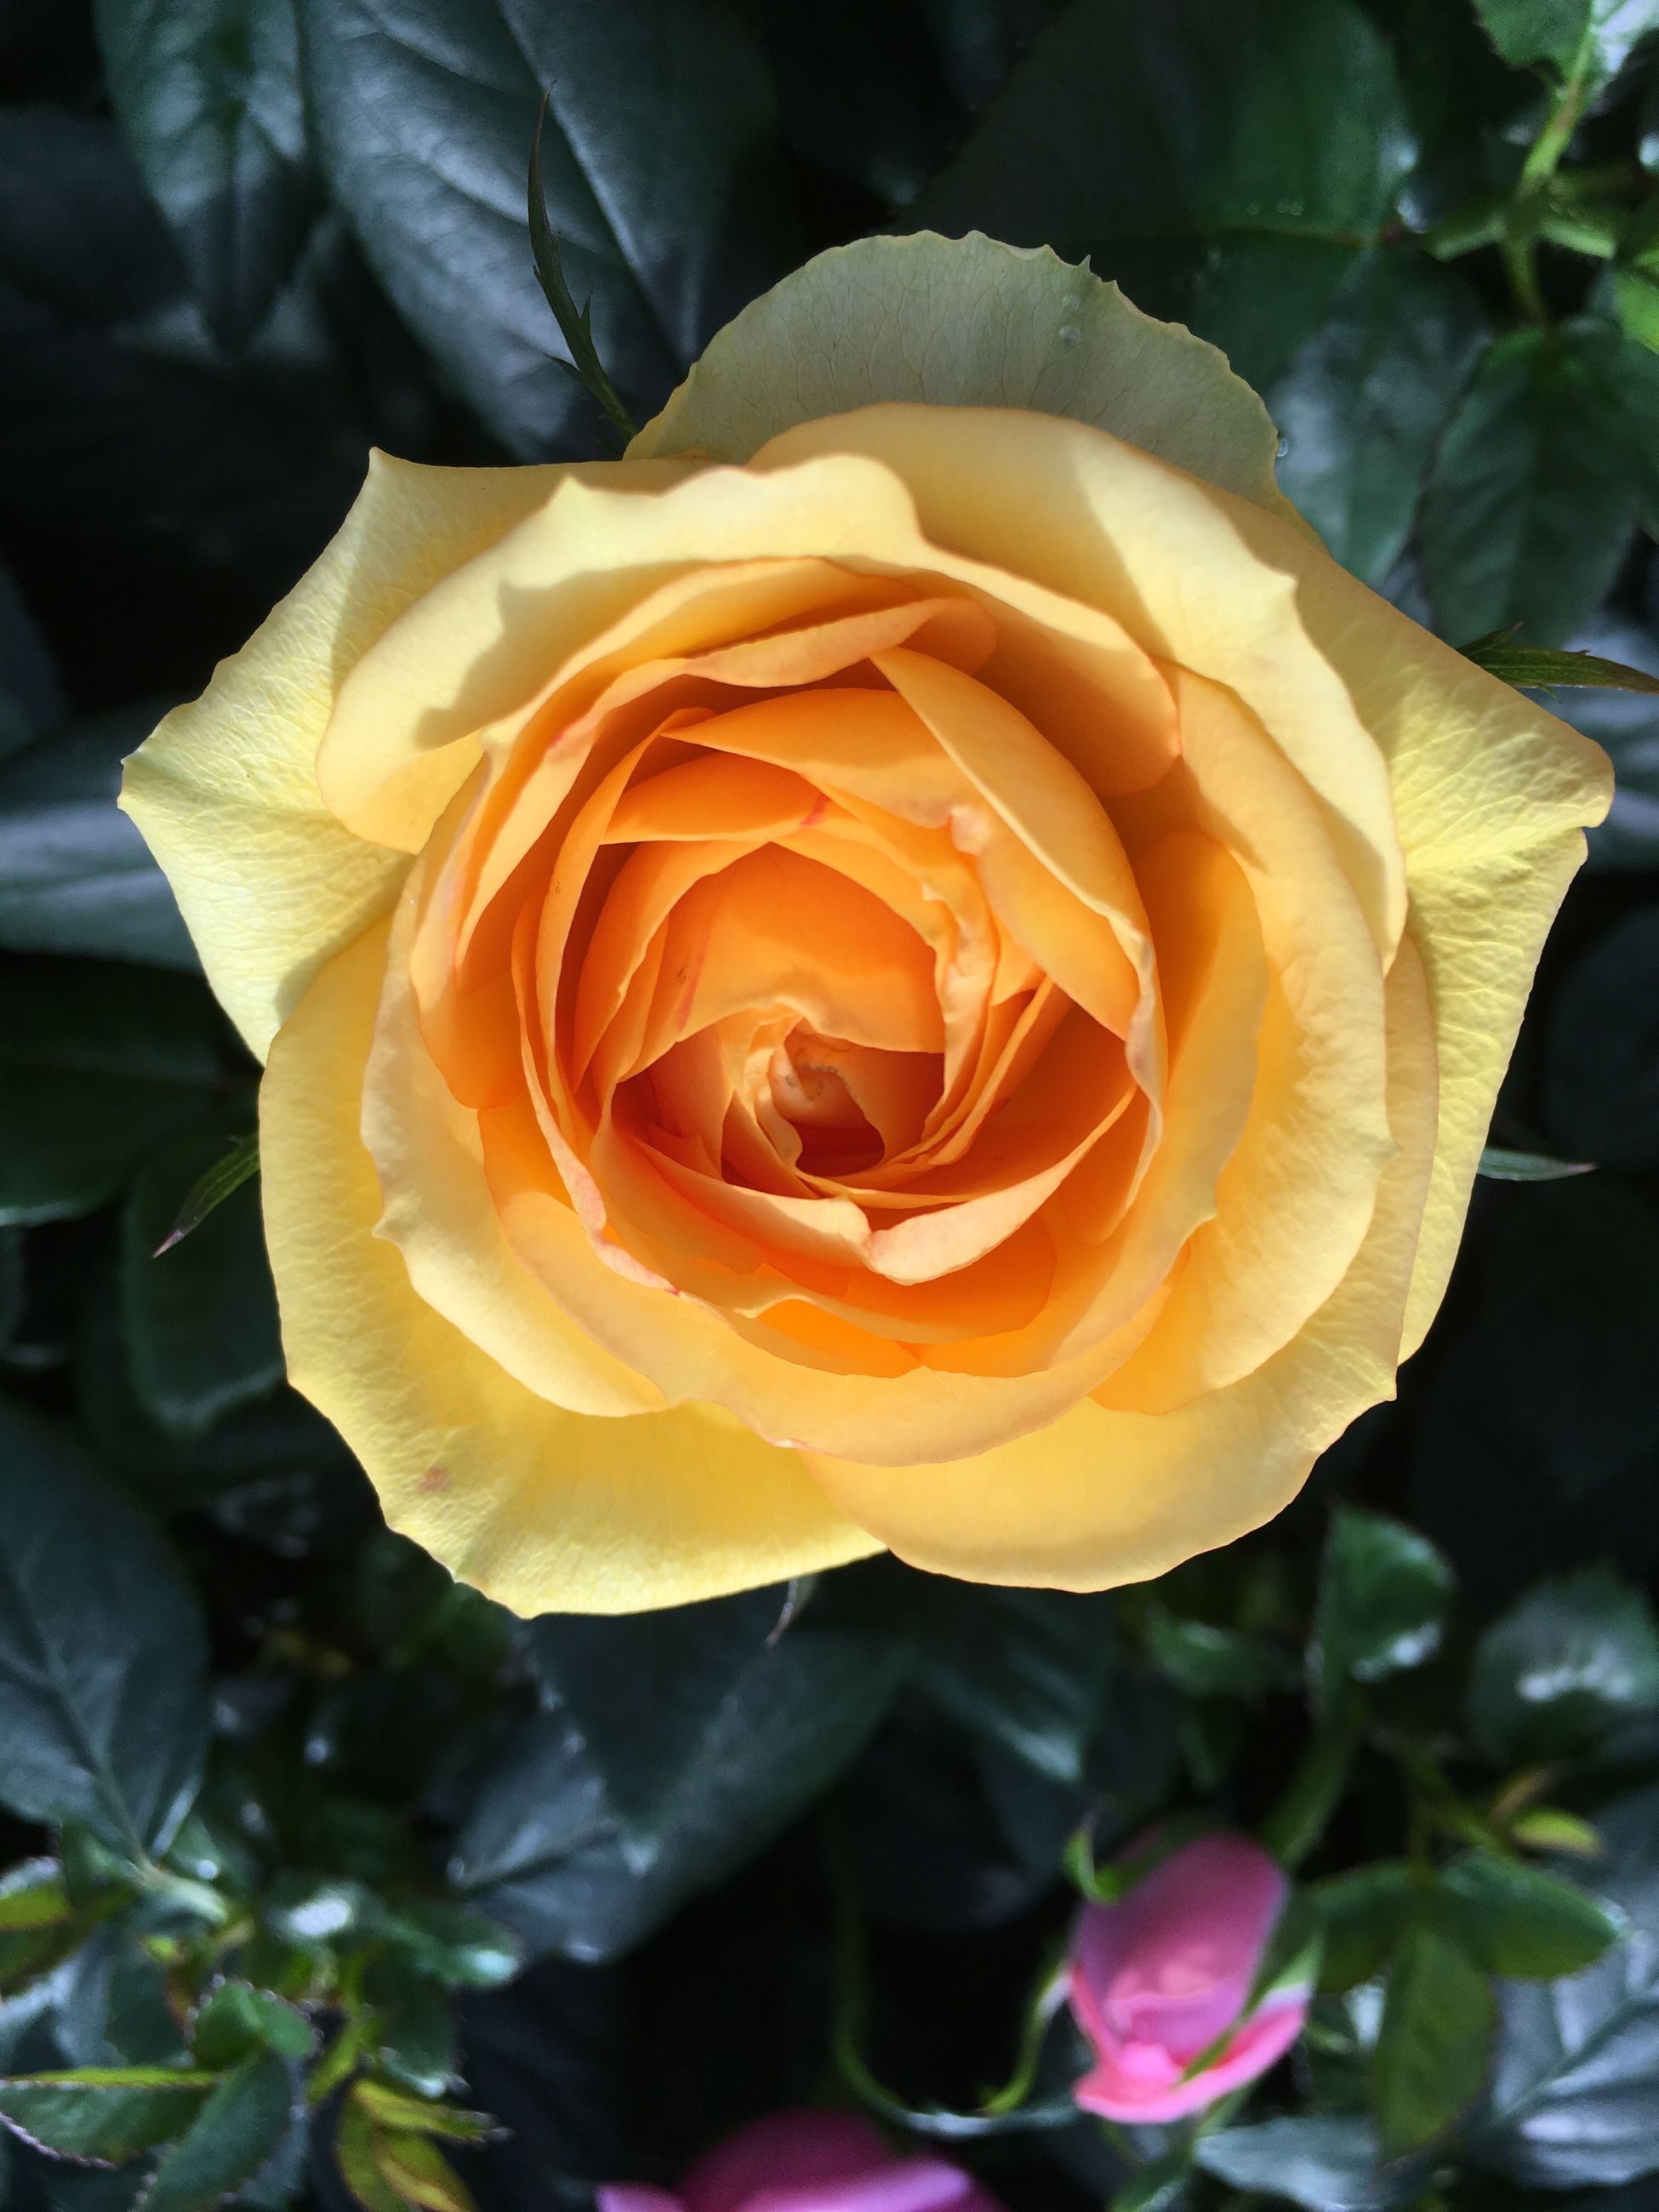 flower, petal, rose - flower, flower head, fragility, freshness, beauty in nature, growth, close-up, yellow, single flower, blooming, rose, nature, focus on foreground, plant, orange color, single rose, in bloom, leaf